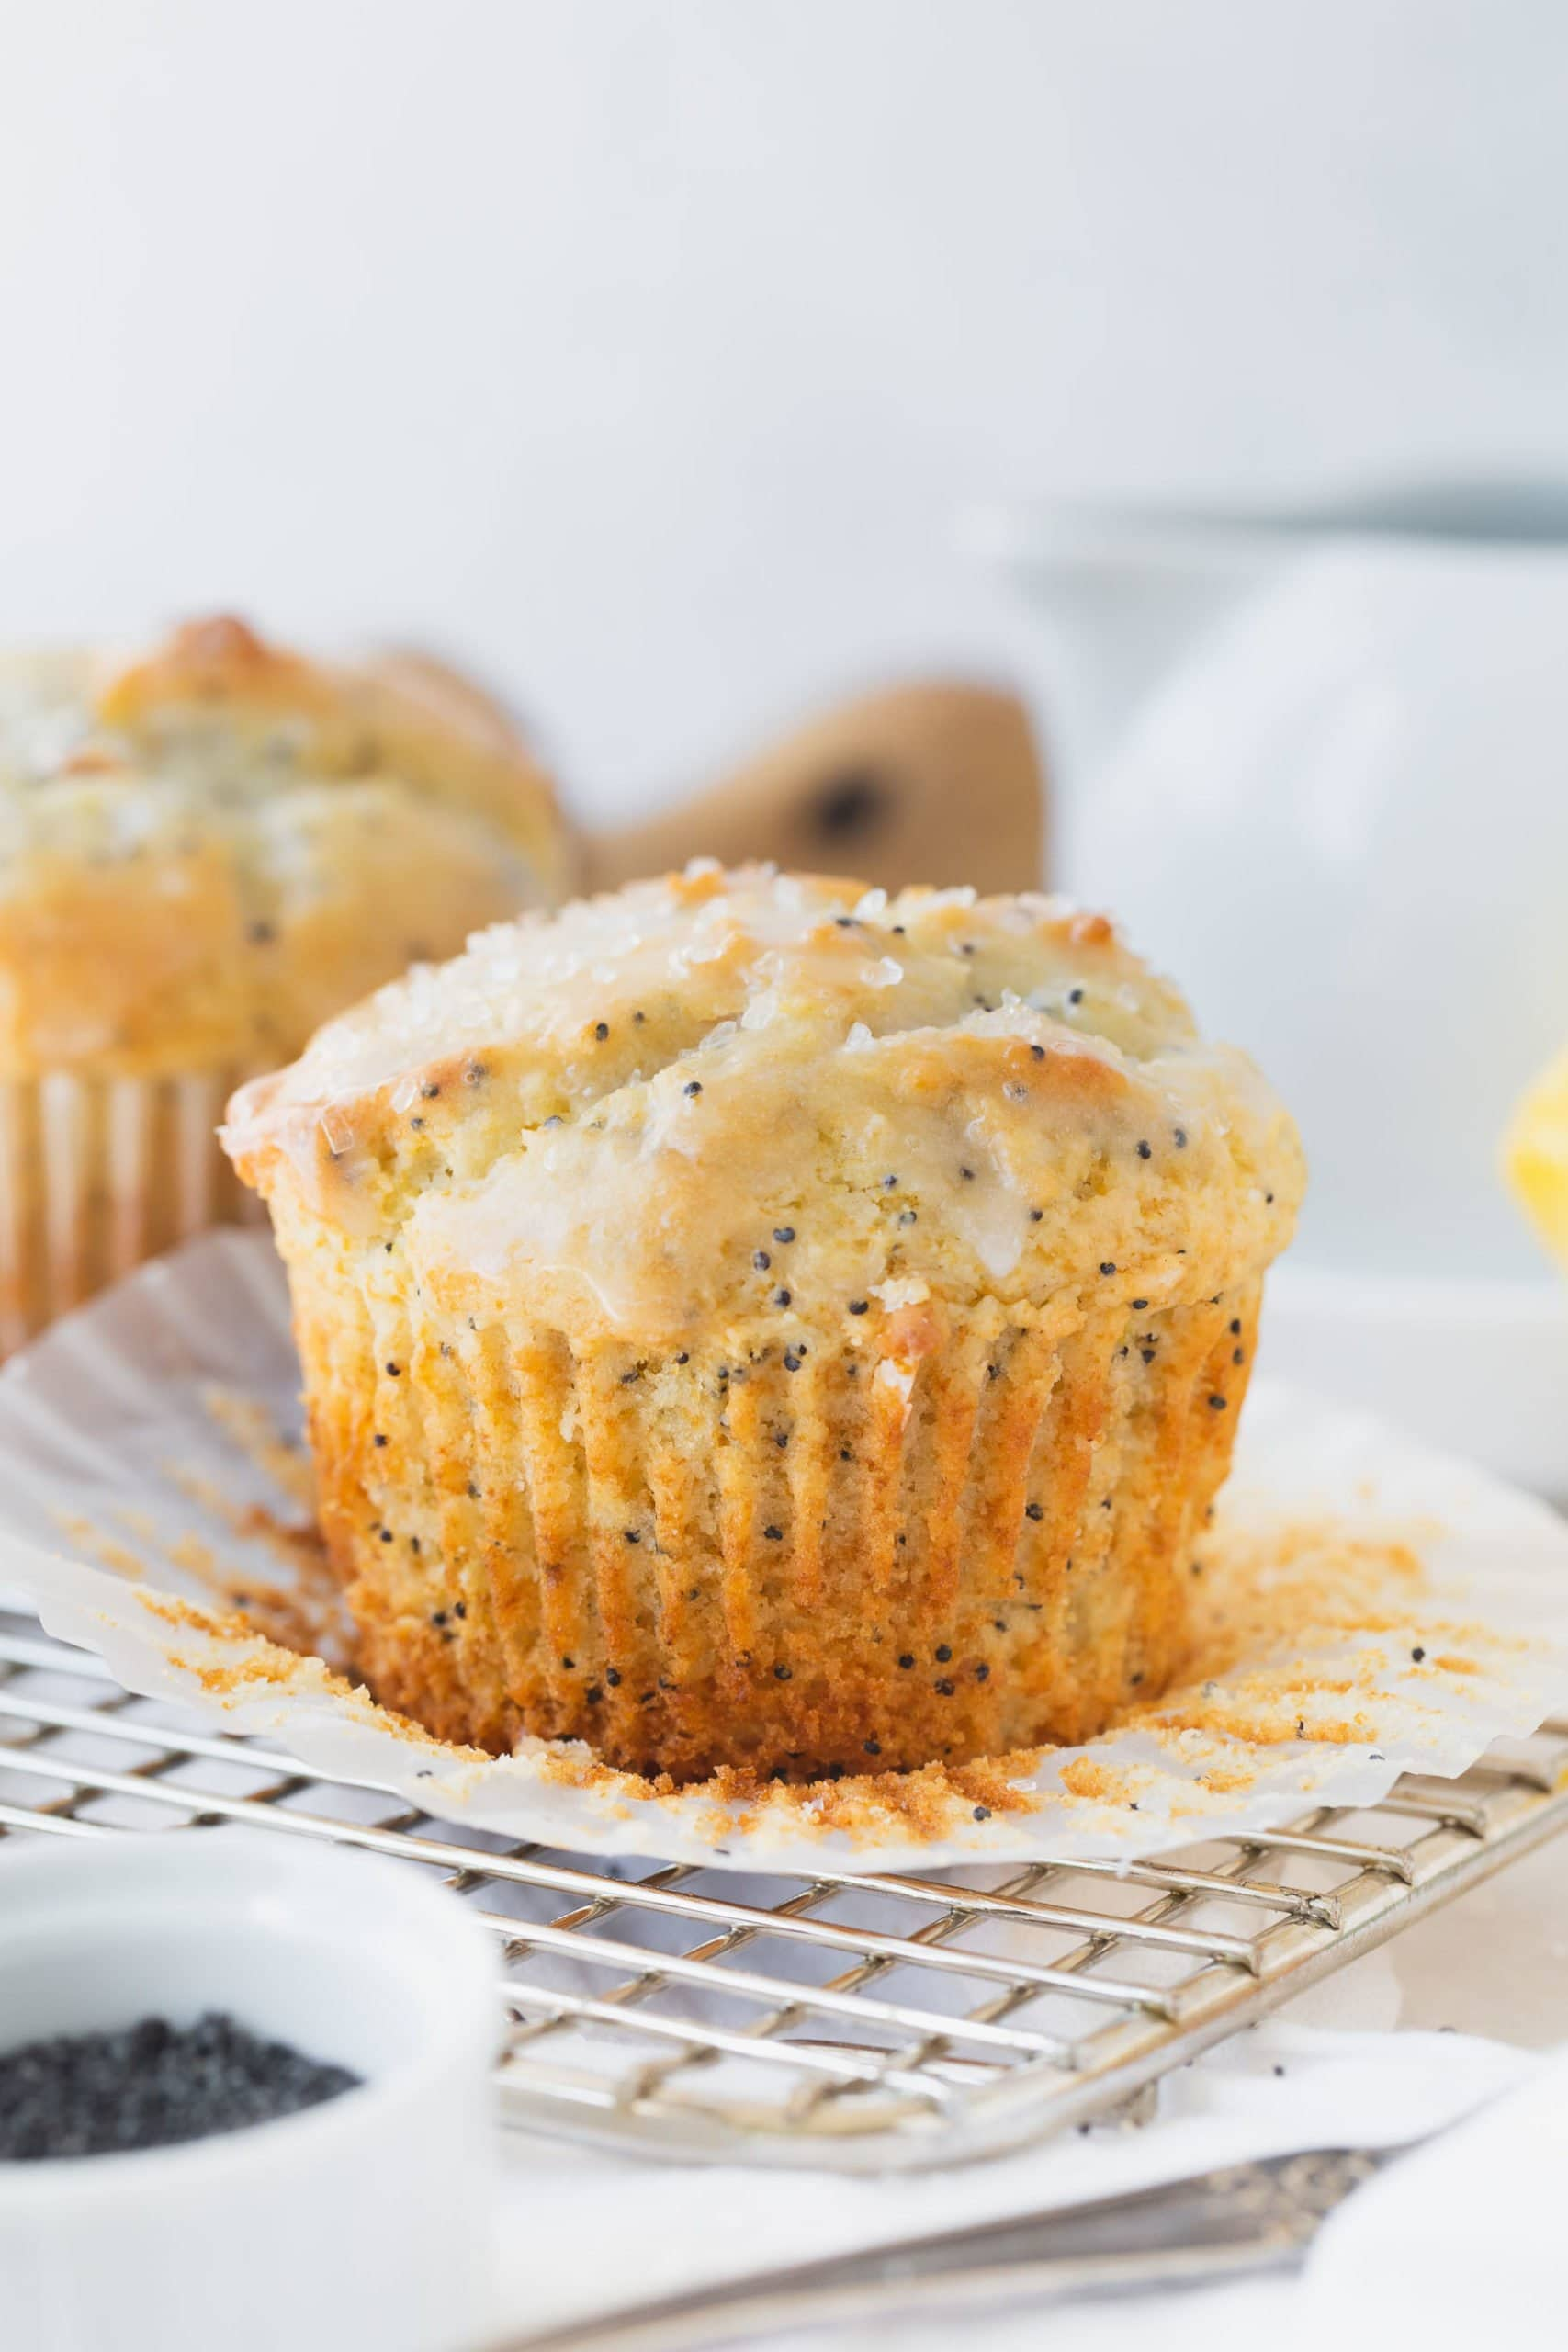 A lemon glazed lemon poppy seed muffin with the paper liner peeled back. there is another muffin in the background.